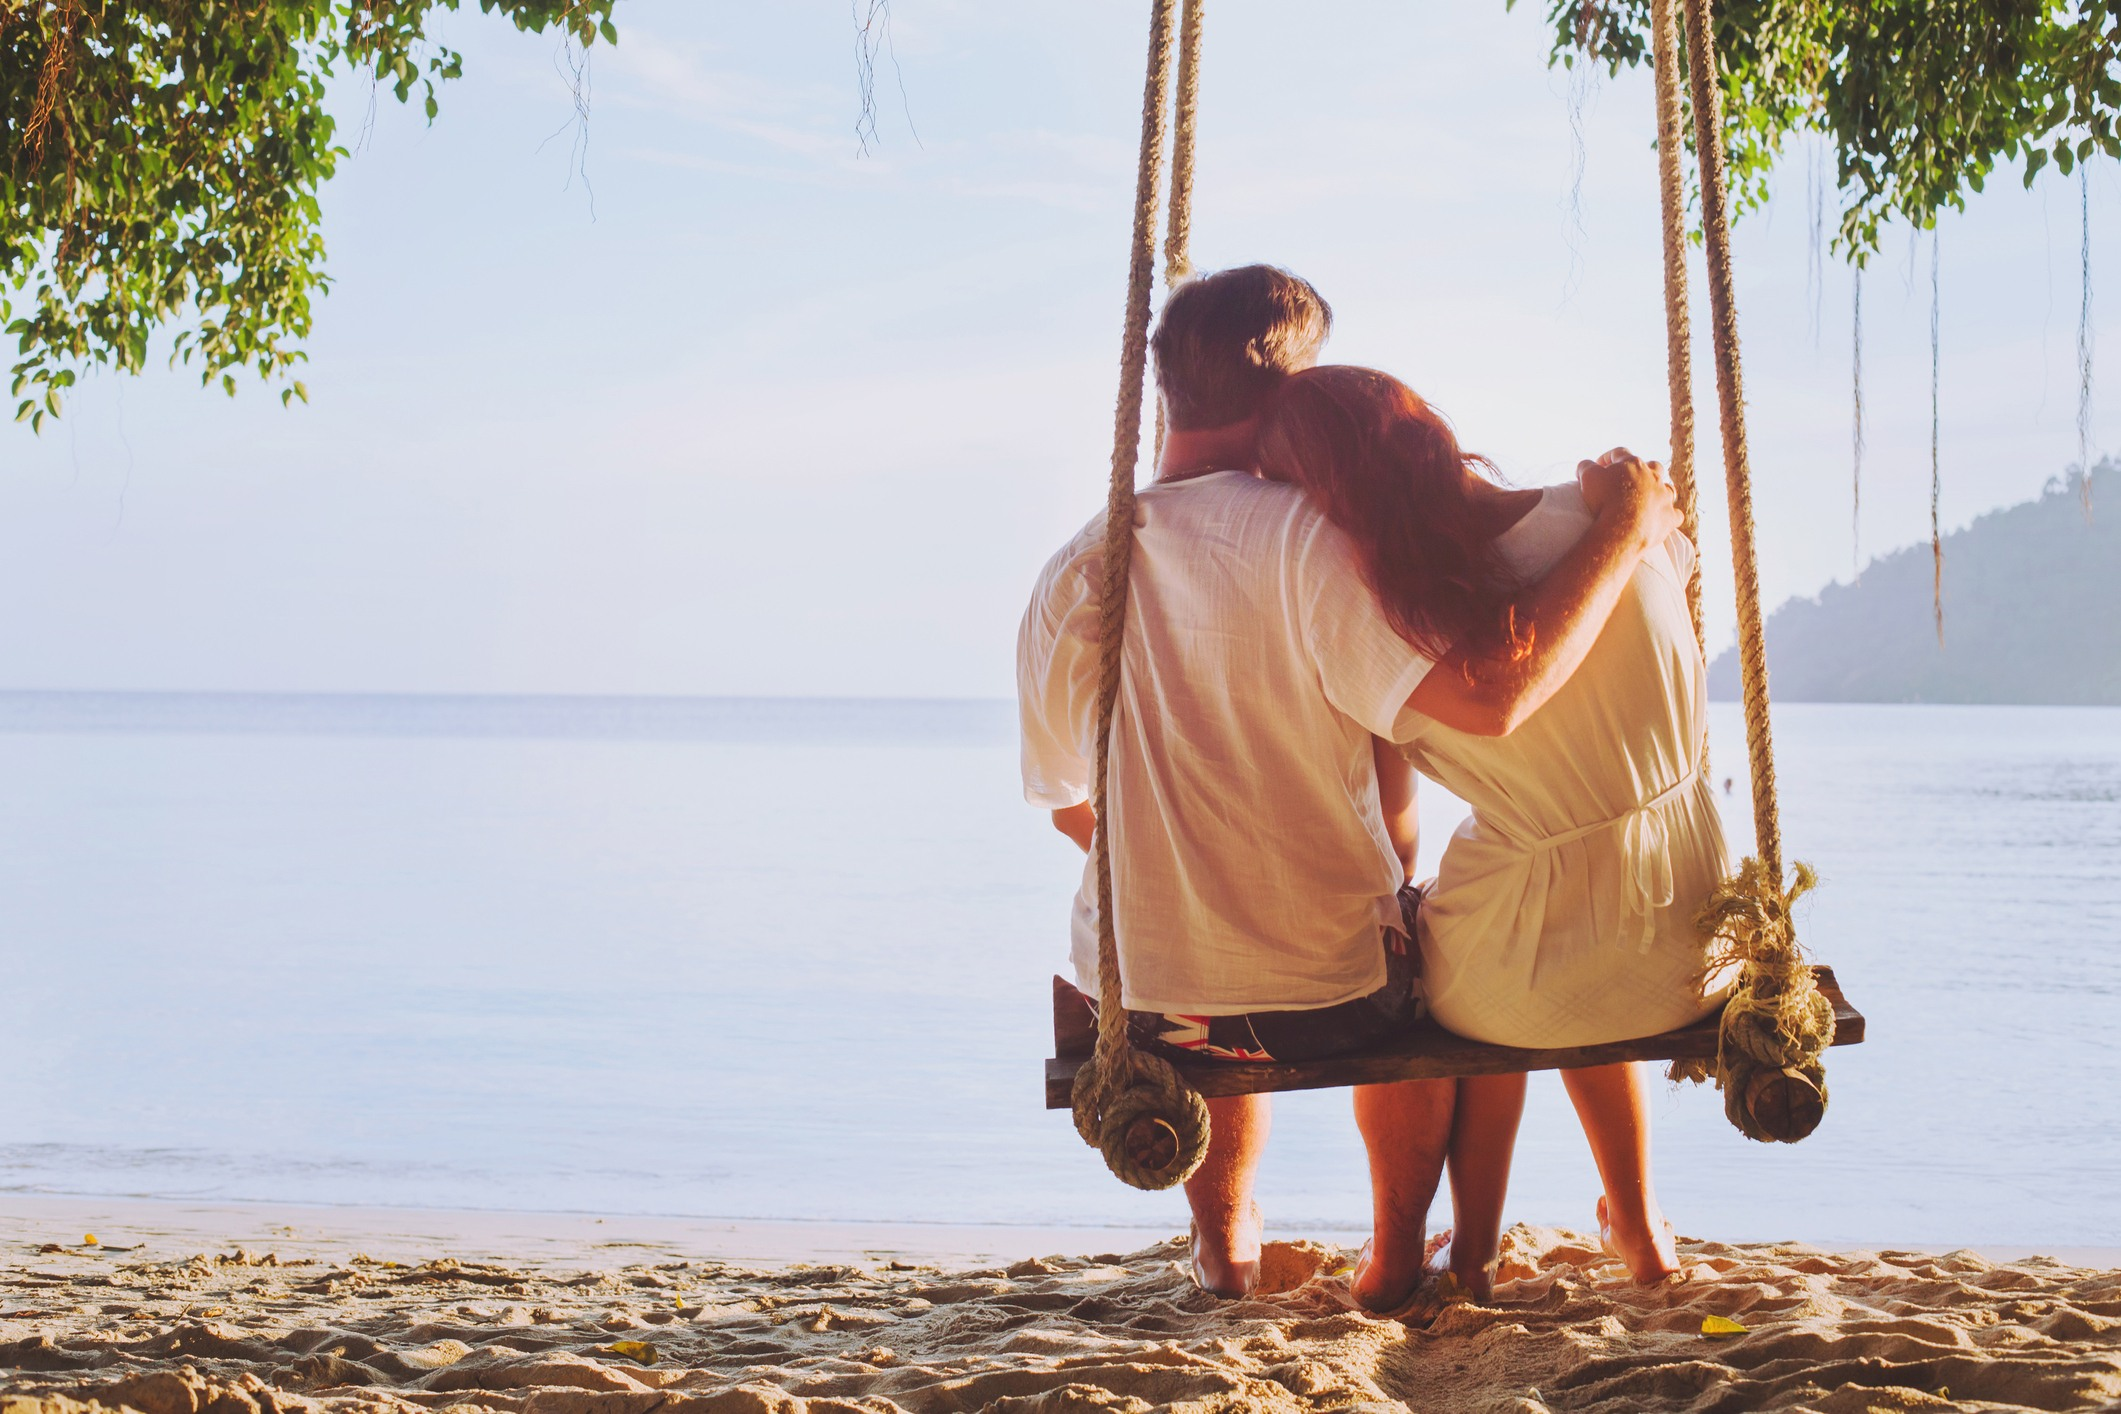 Couple sitting together on the beach on a swing